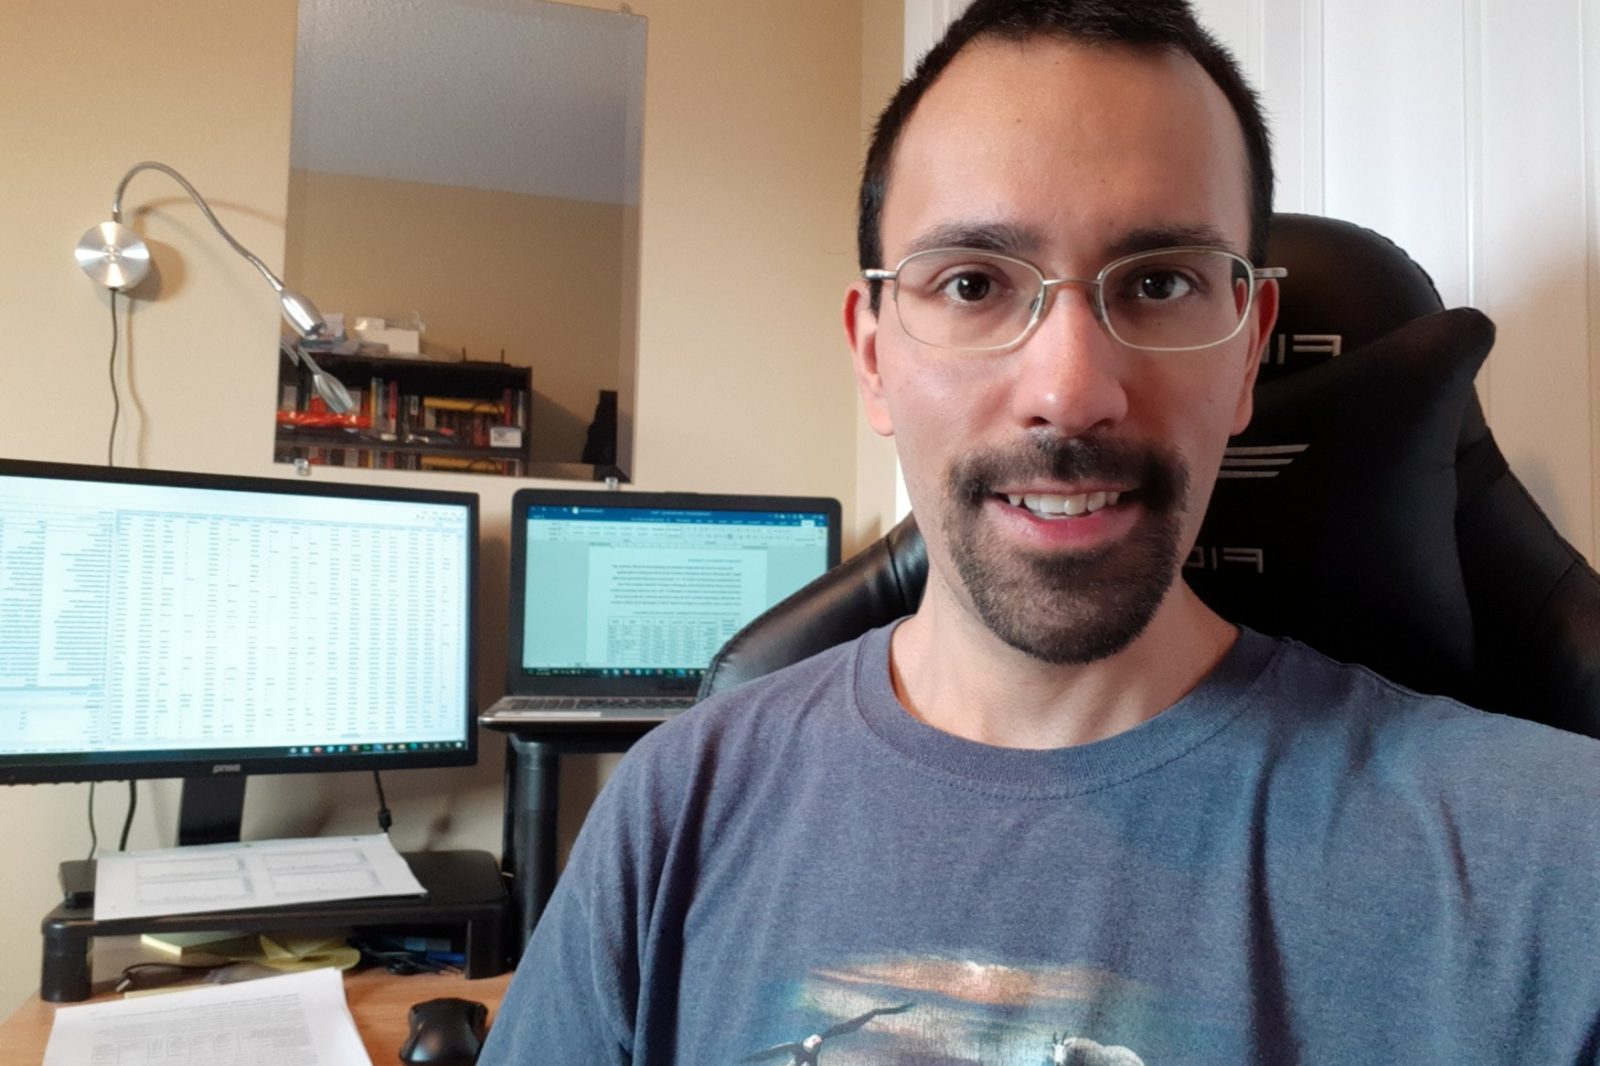 Shawn Blankinship working with statistics related to Indigenous governance